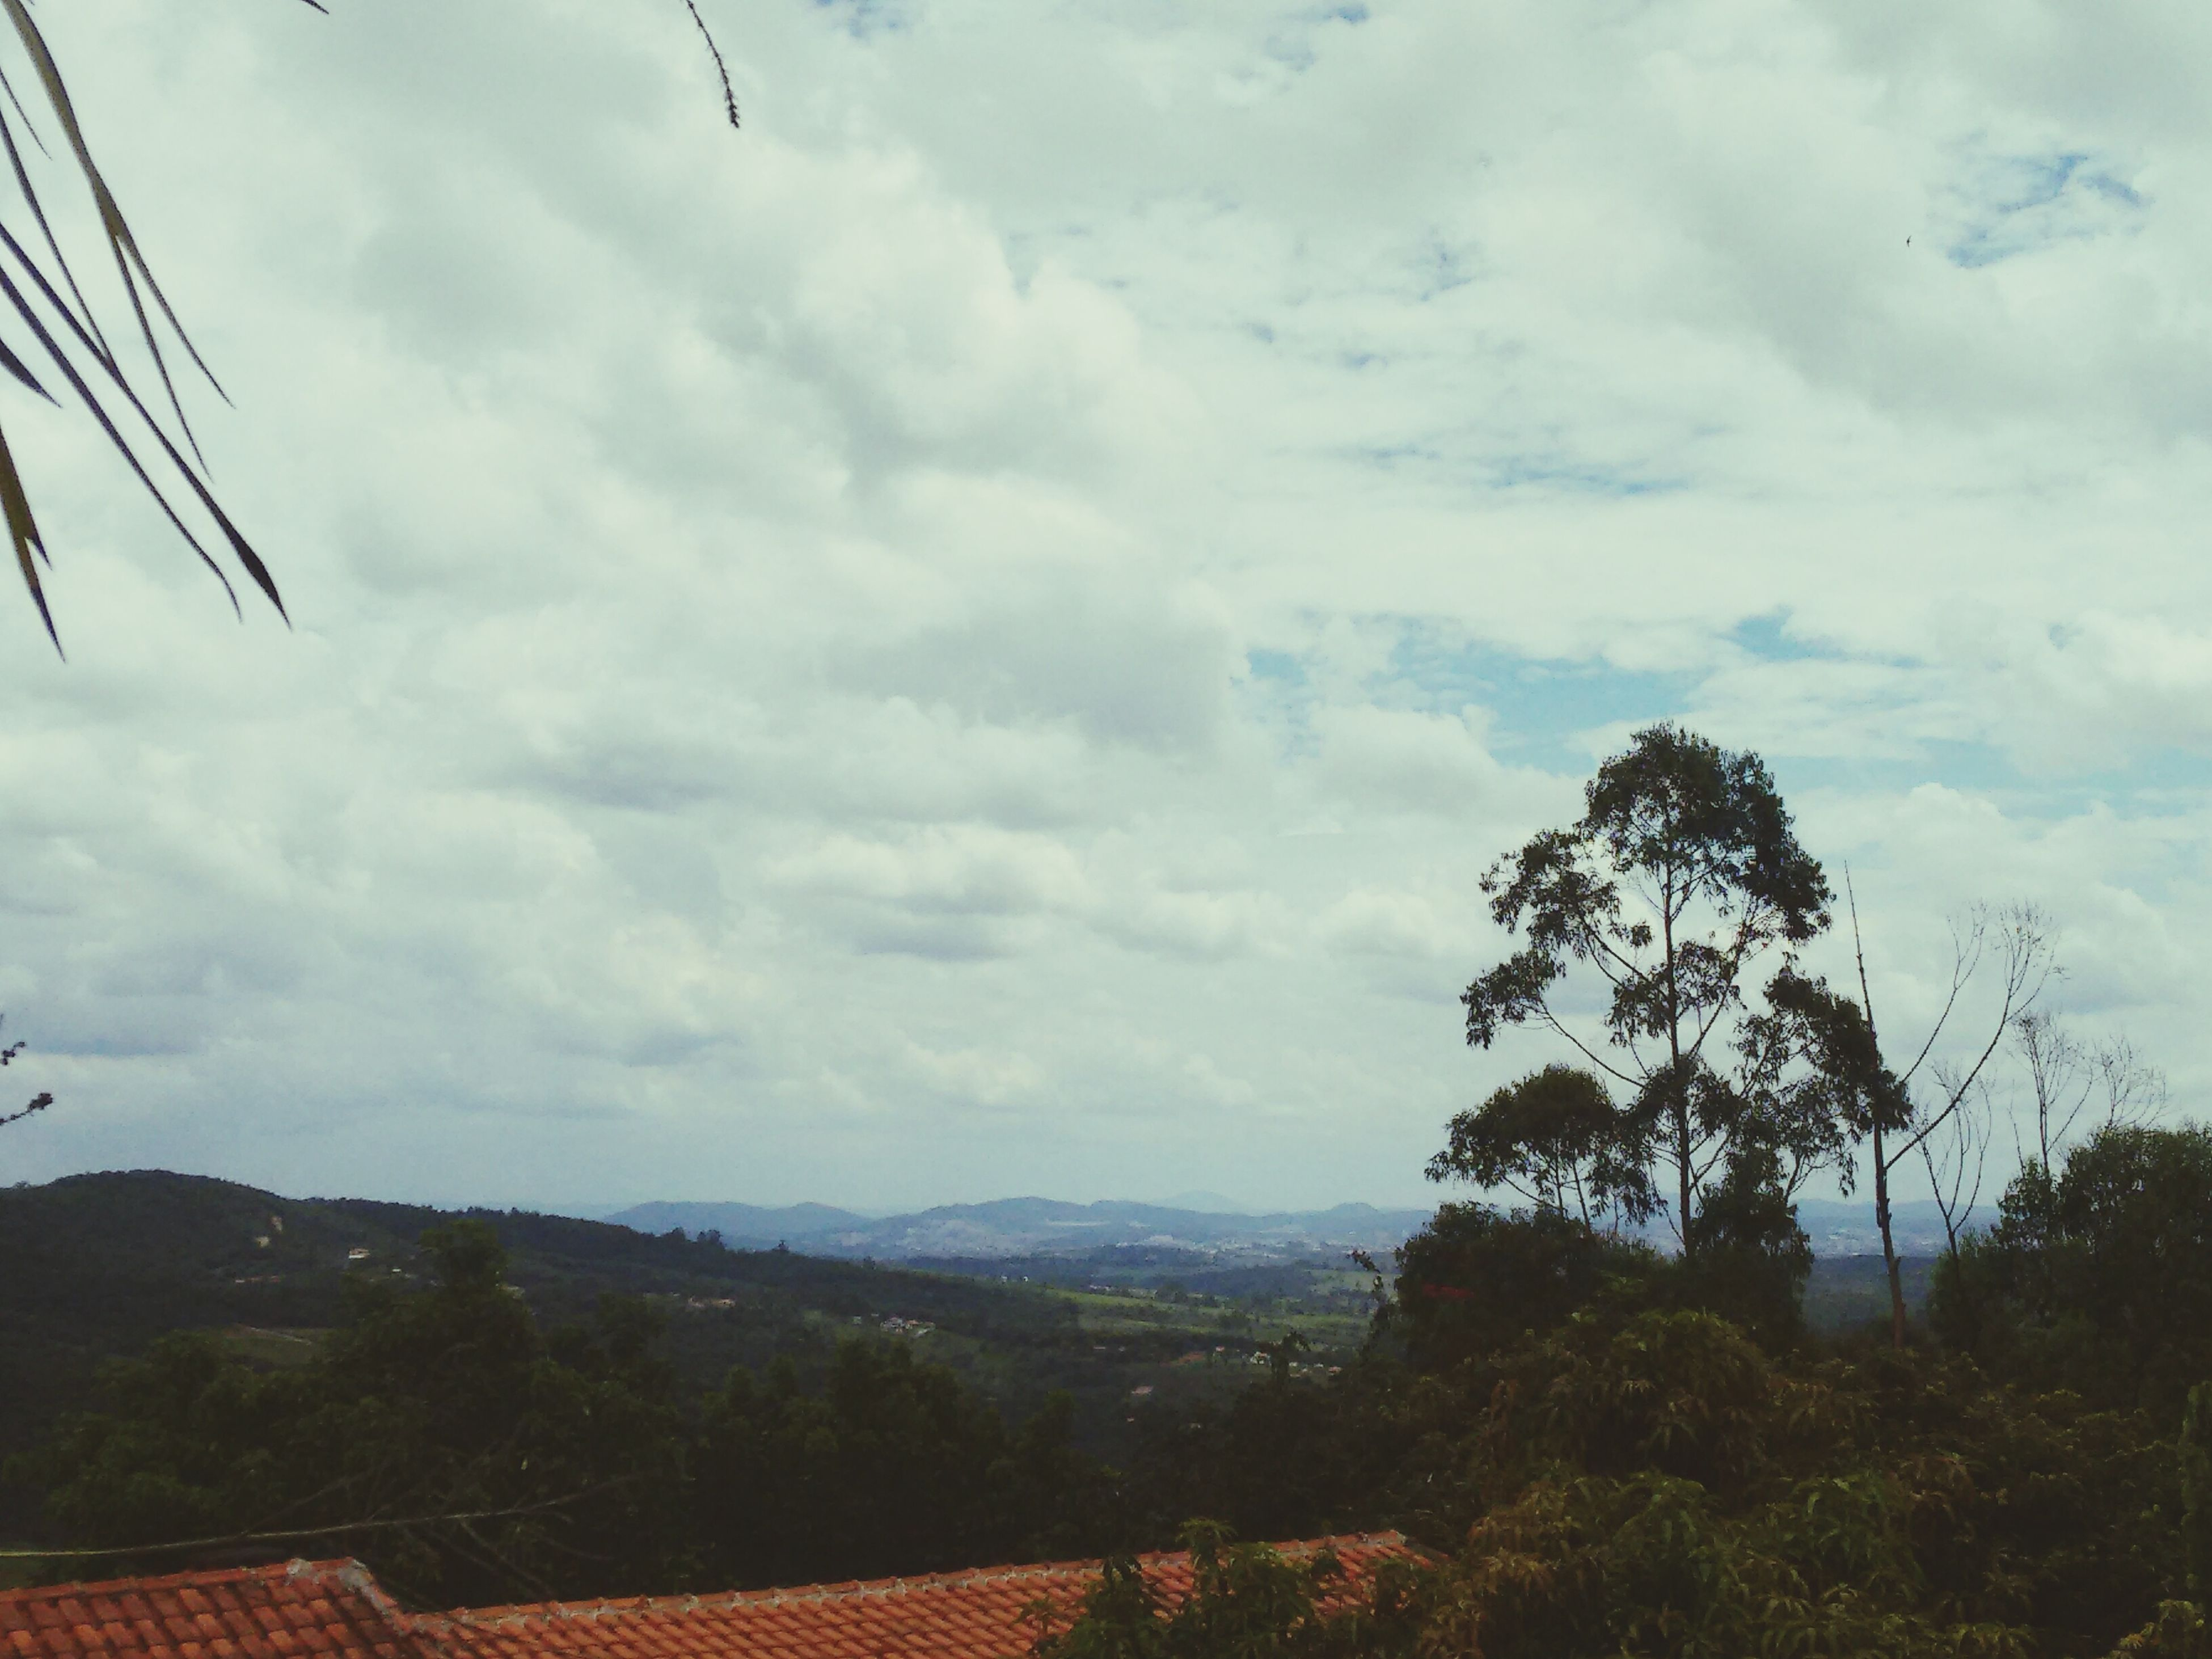 sky, cloud - sky, tree, cloudy, cloud, landscape, tranquil scene, tranquility, mountain, scenics, nature, beauty in nature, built structure, day, growth, overcast, low angle view, outdoors, building exterior, hill